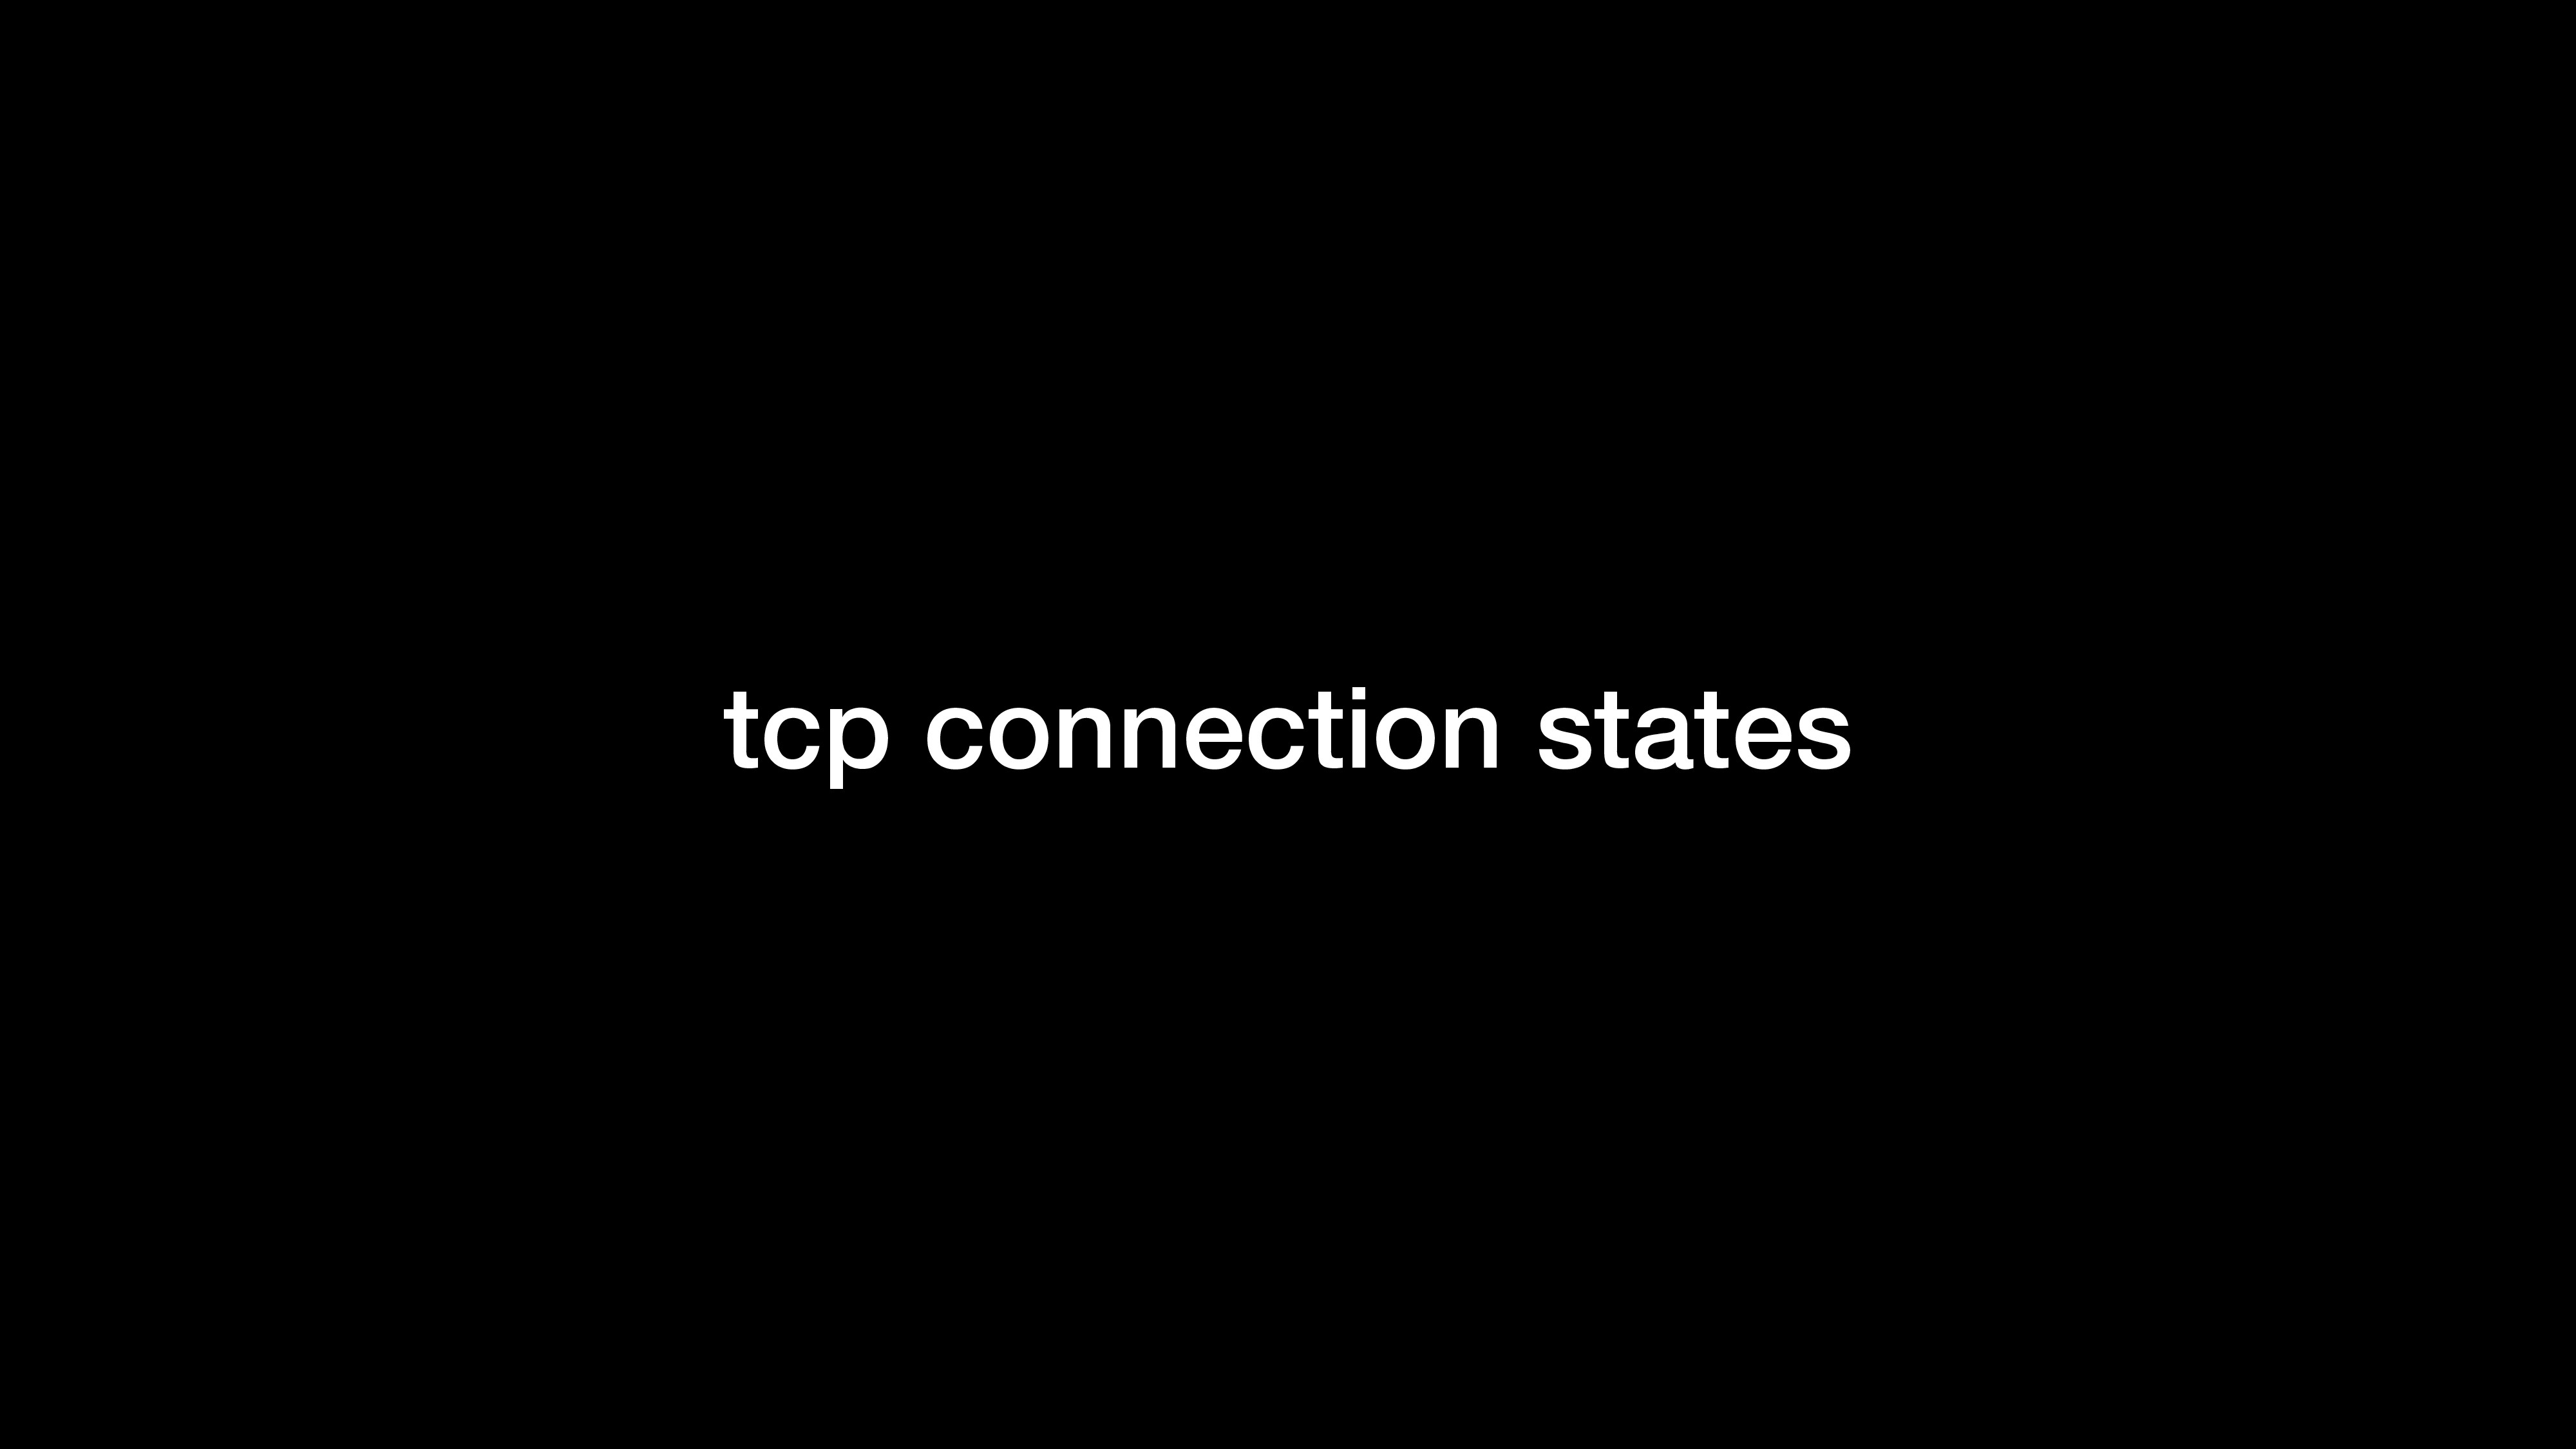 tcp connection states